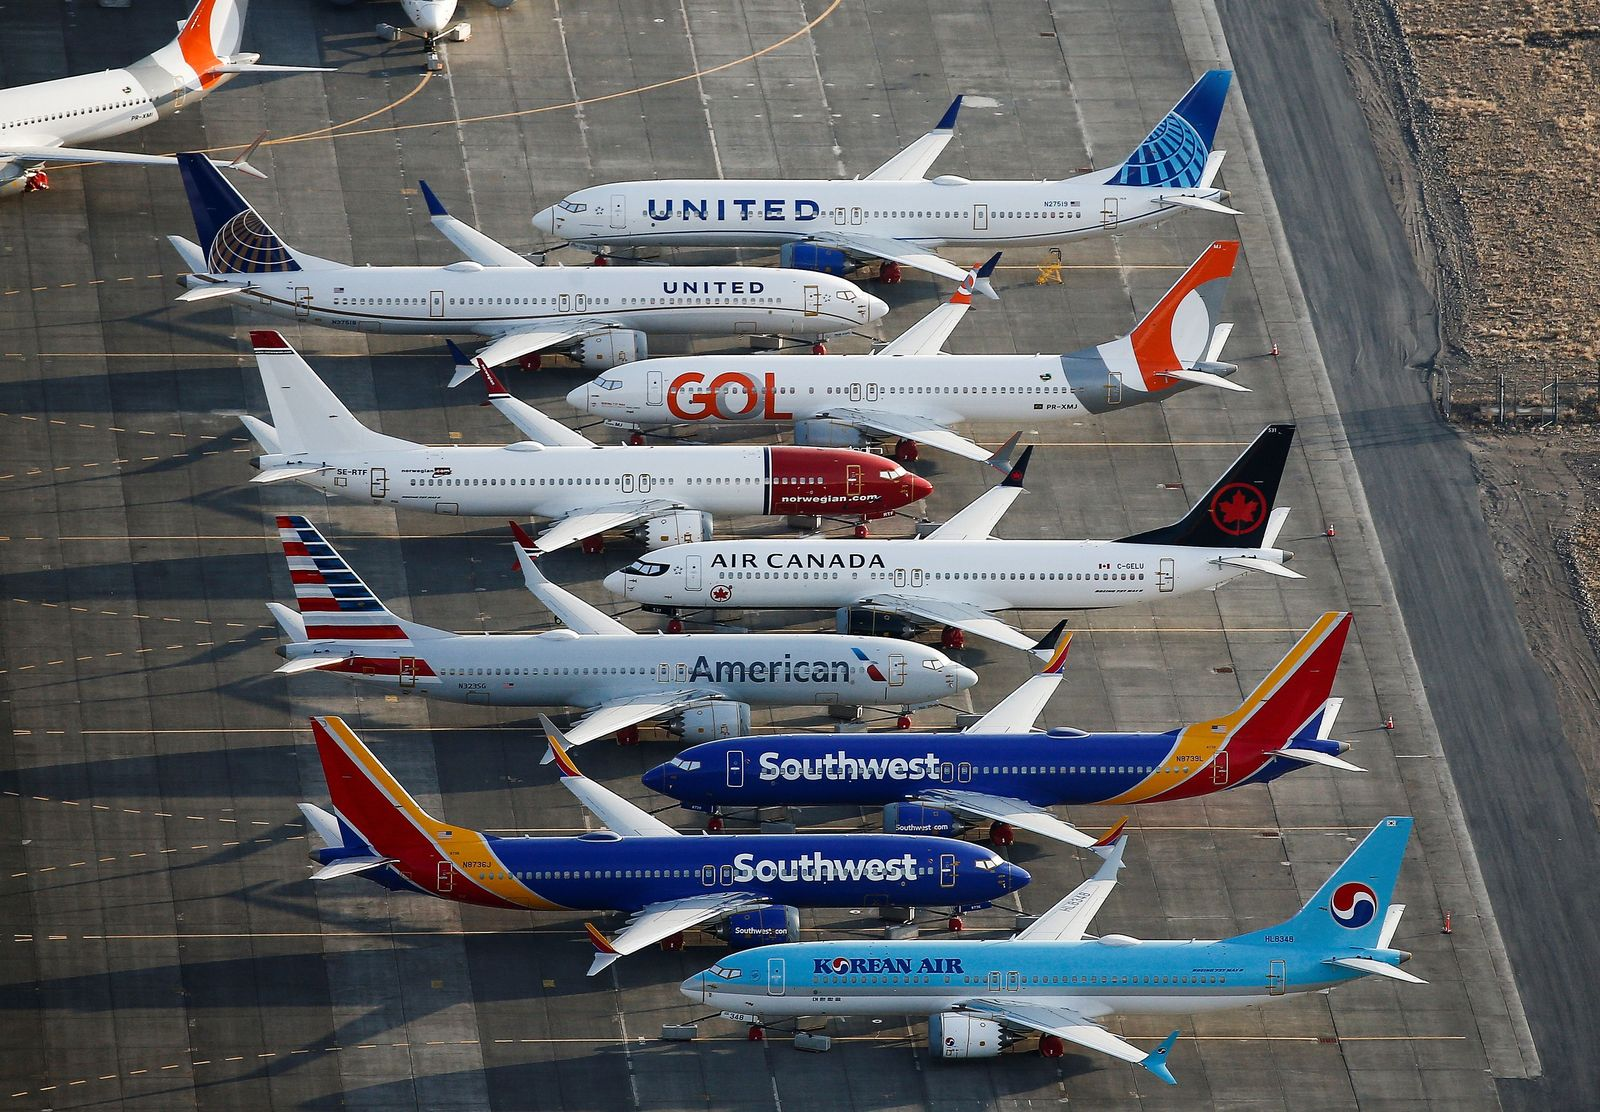 FILE PHOTO: An aerial photo shows Boeing 737 MAX aircraft at Boeing facilities at the Grant County International Airport in Moses Lake